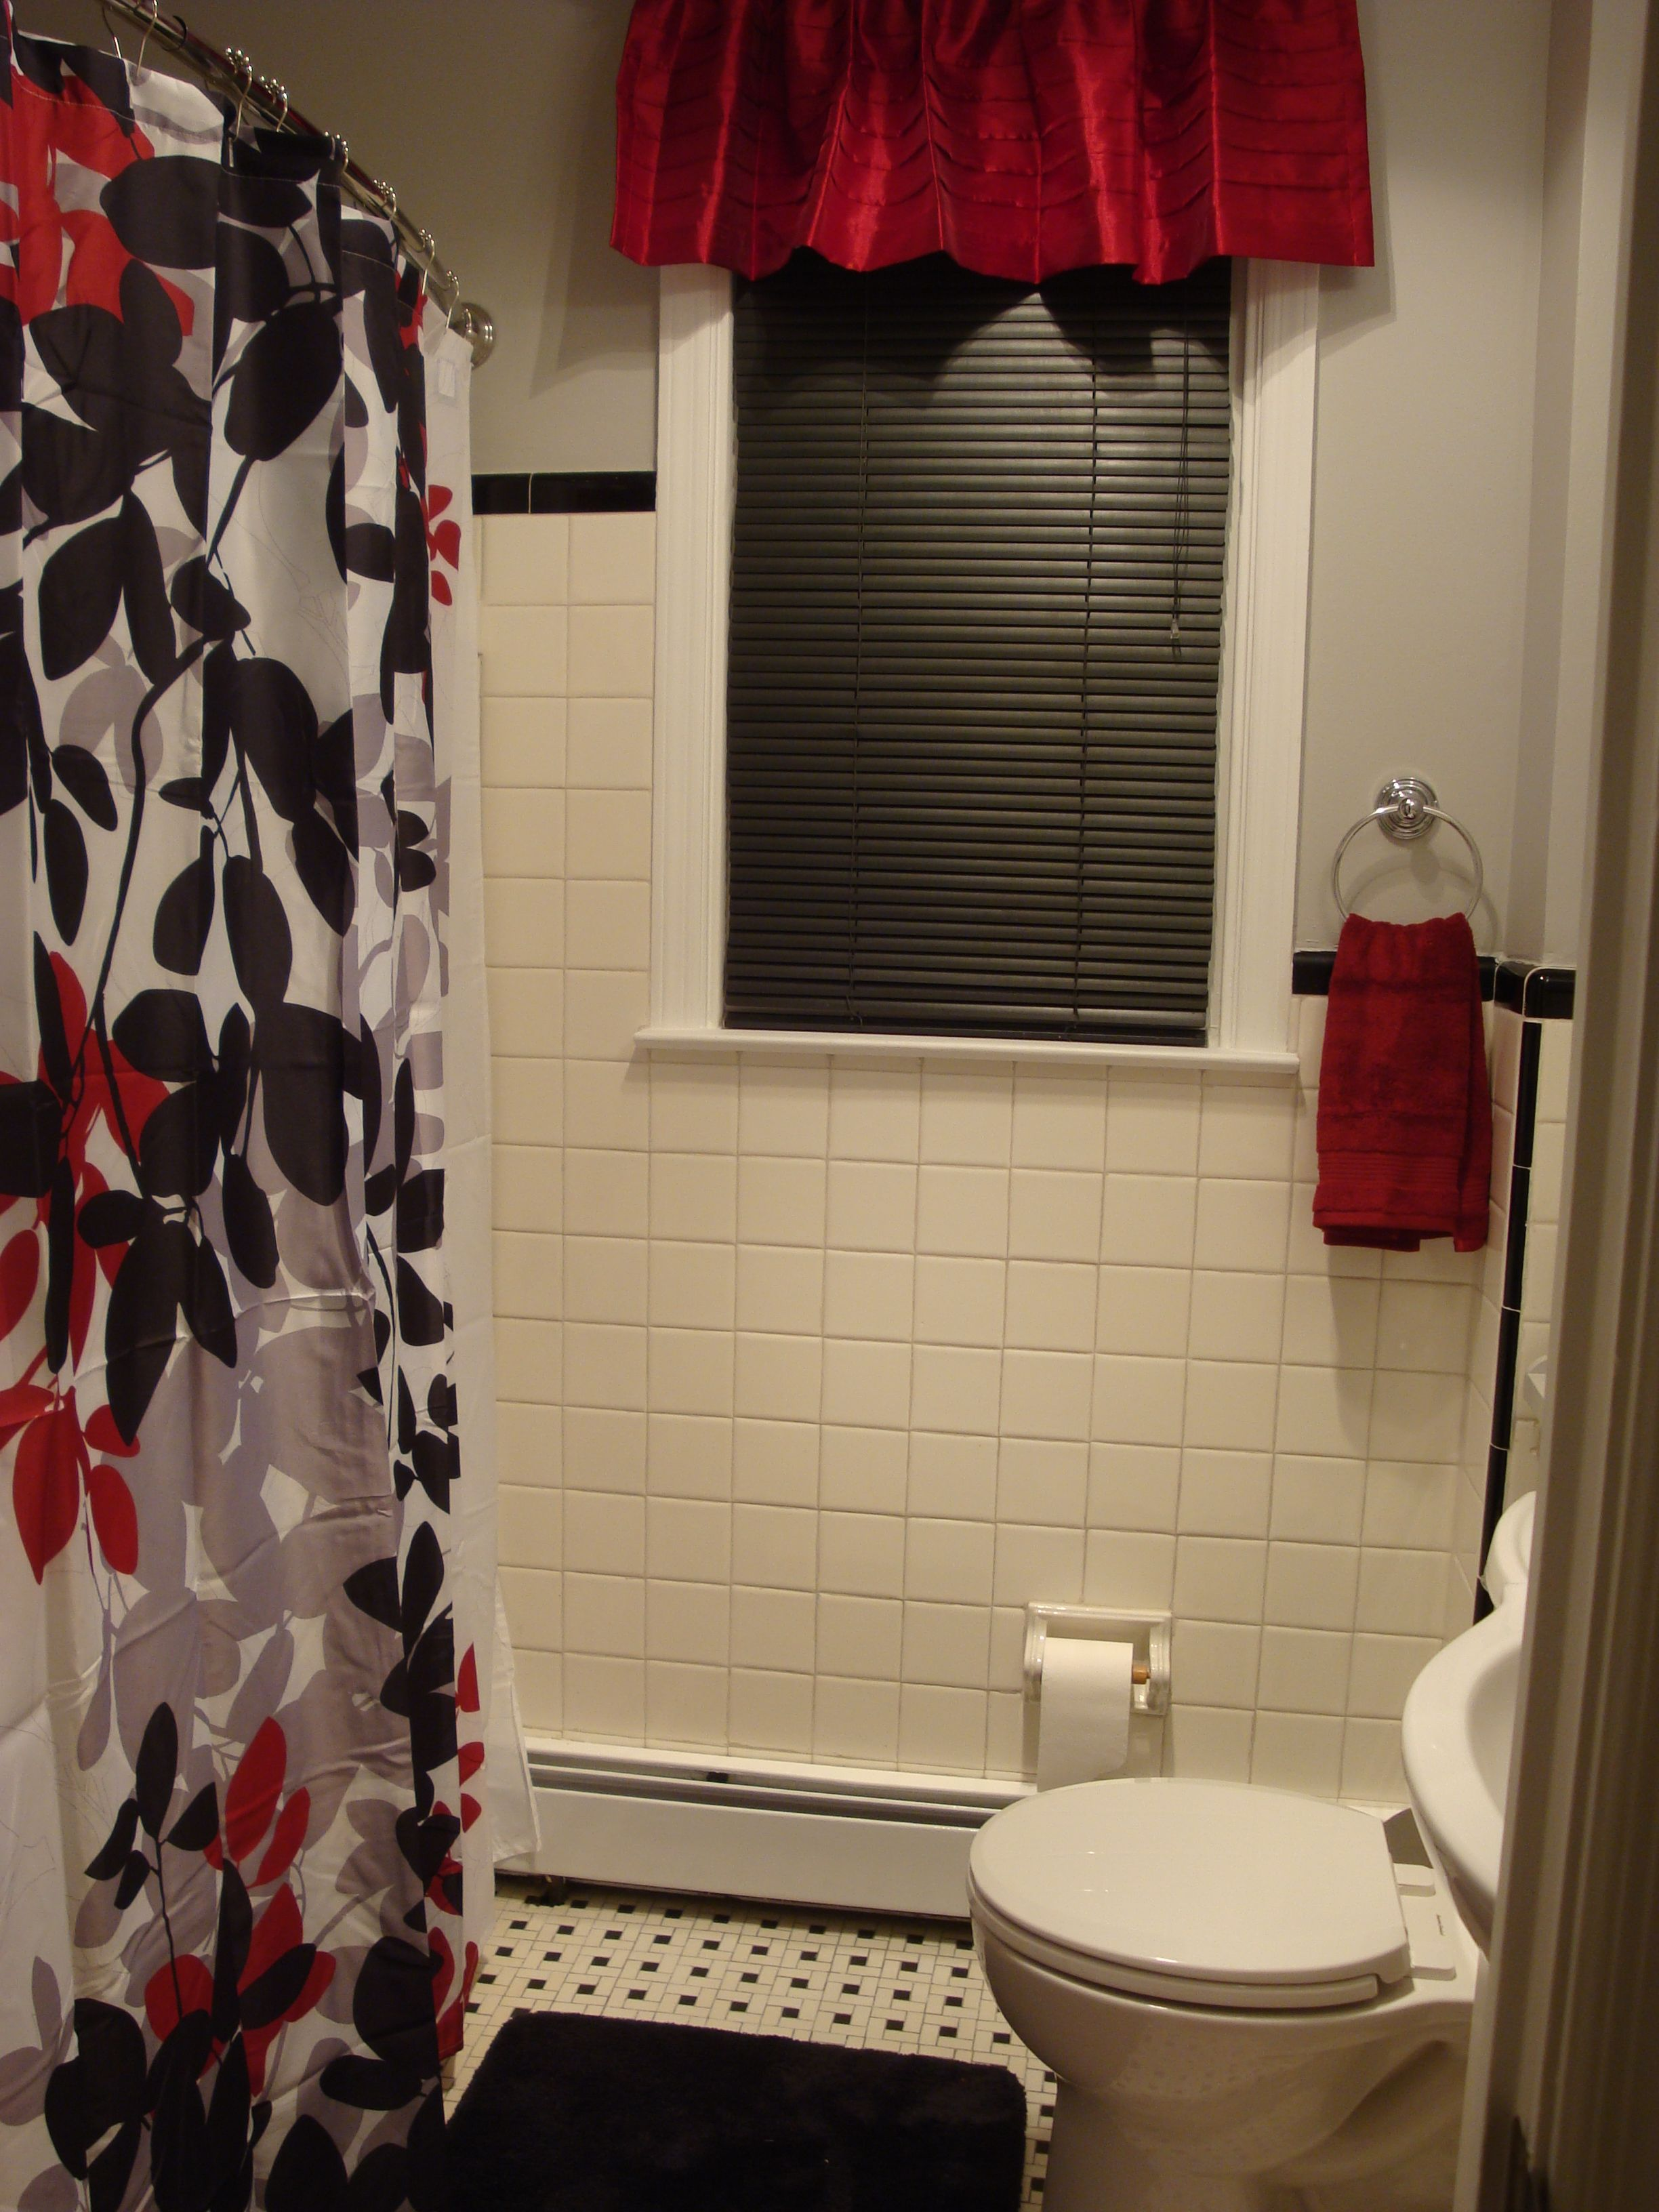 Find this pin and more on bathroom red black and grey shower curtain